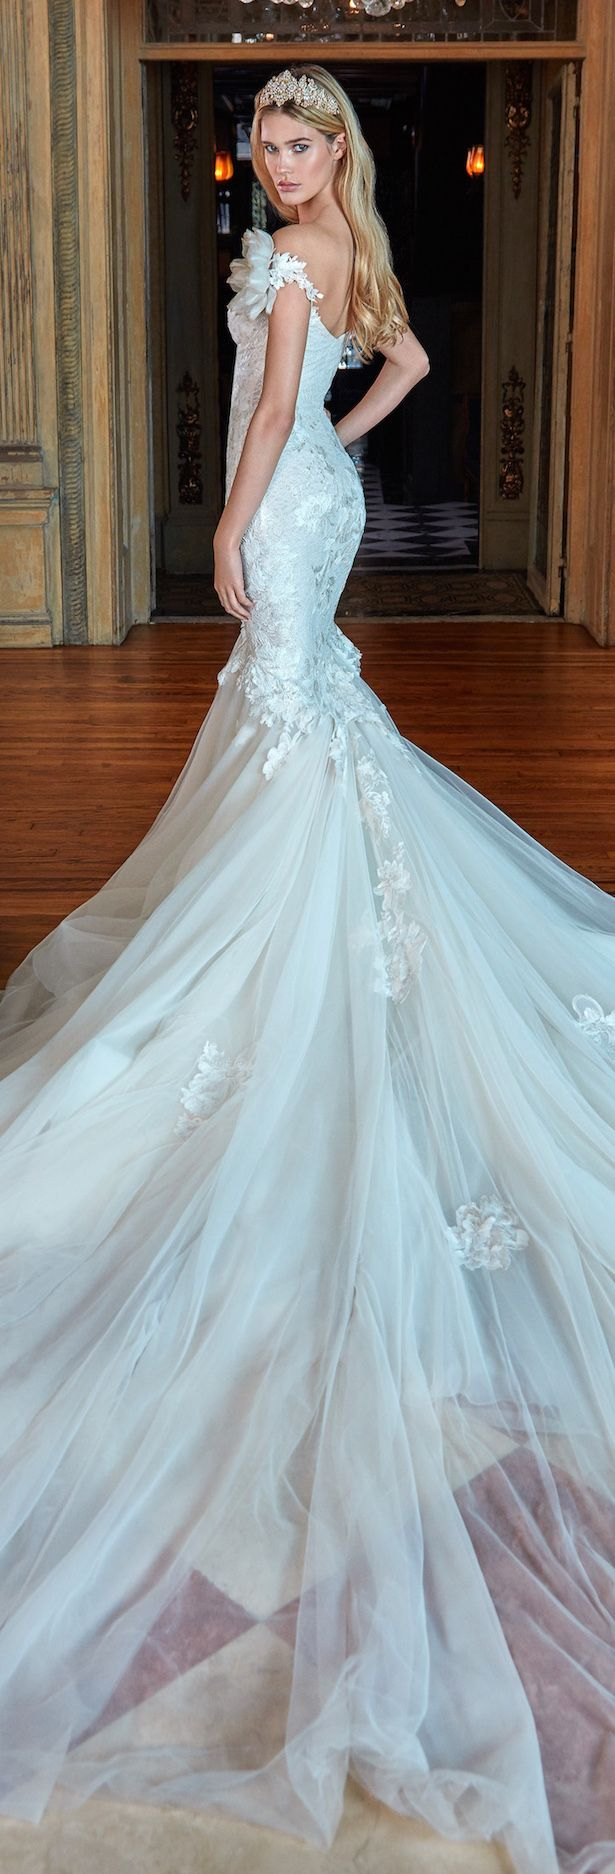 22 best Galia Lahav images on Pinterest | Wedding frocks, Short ...